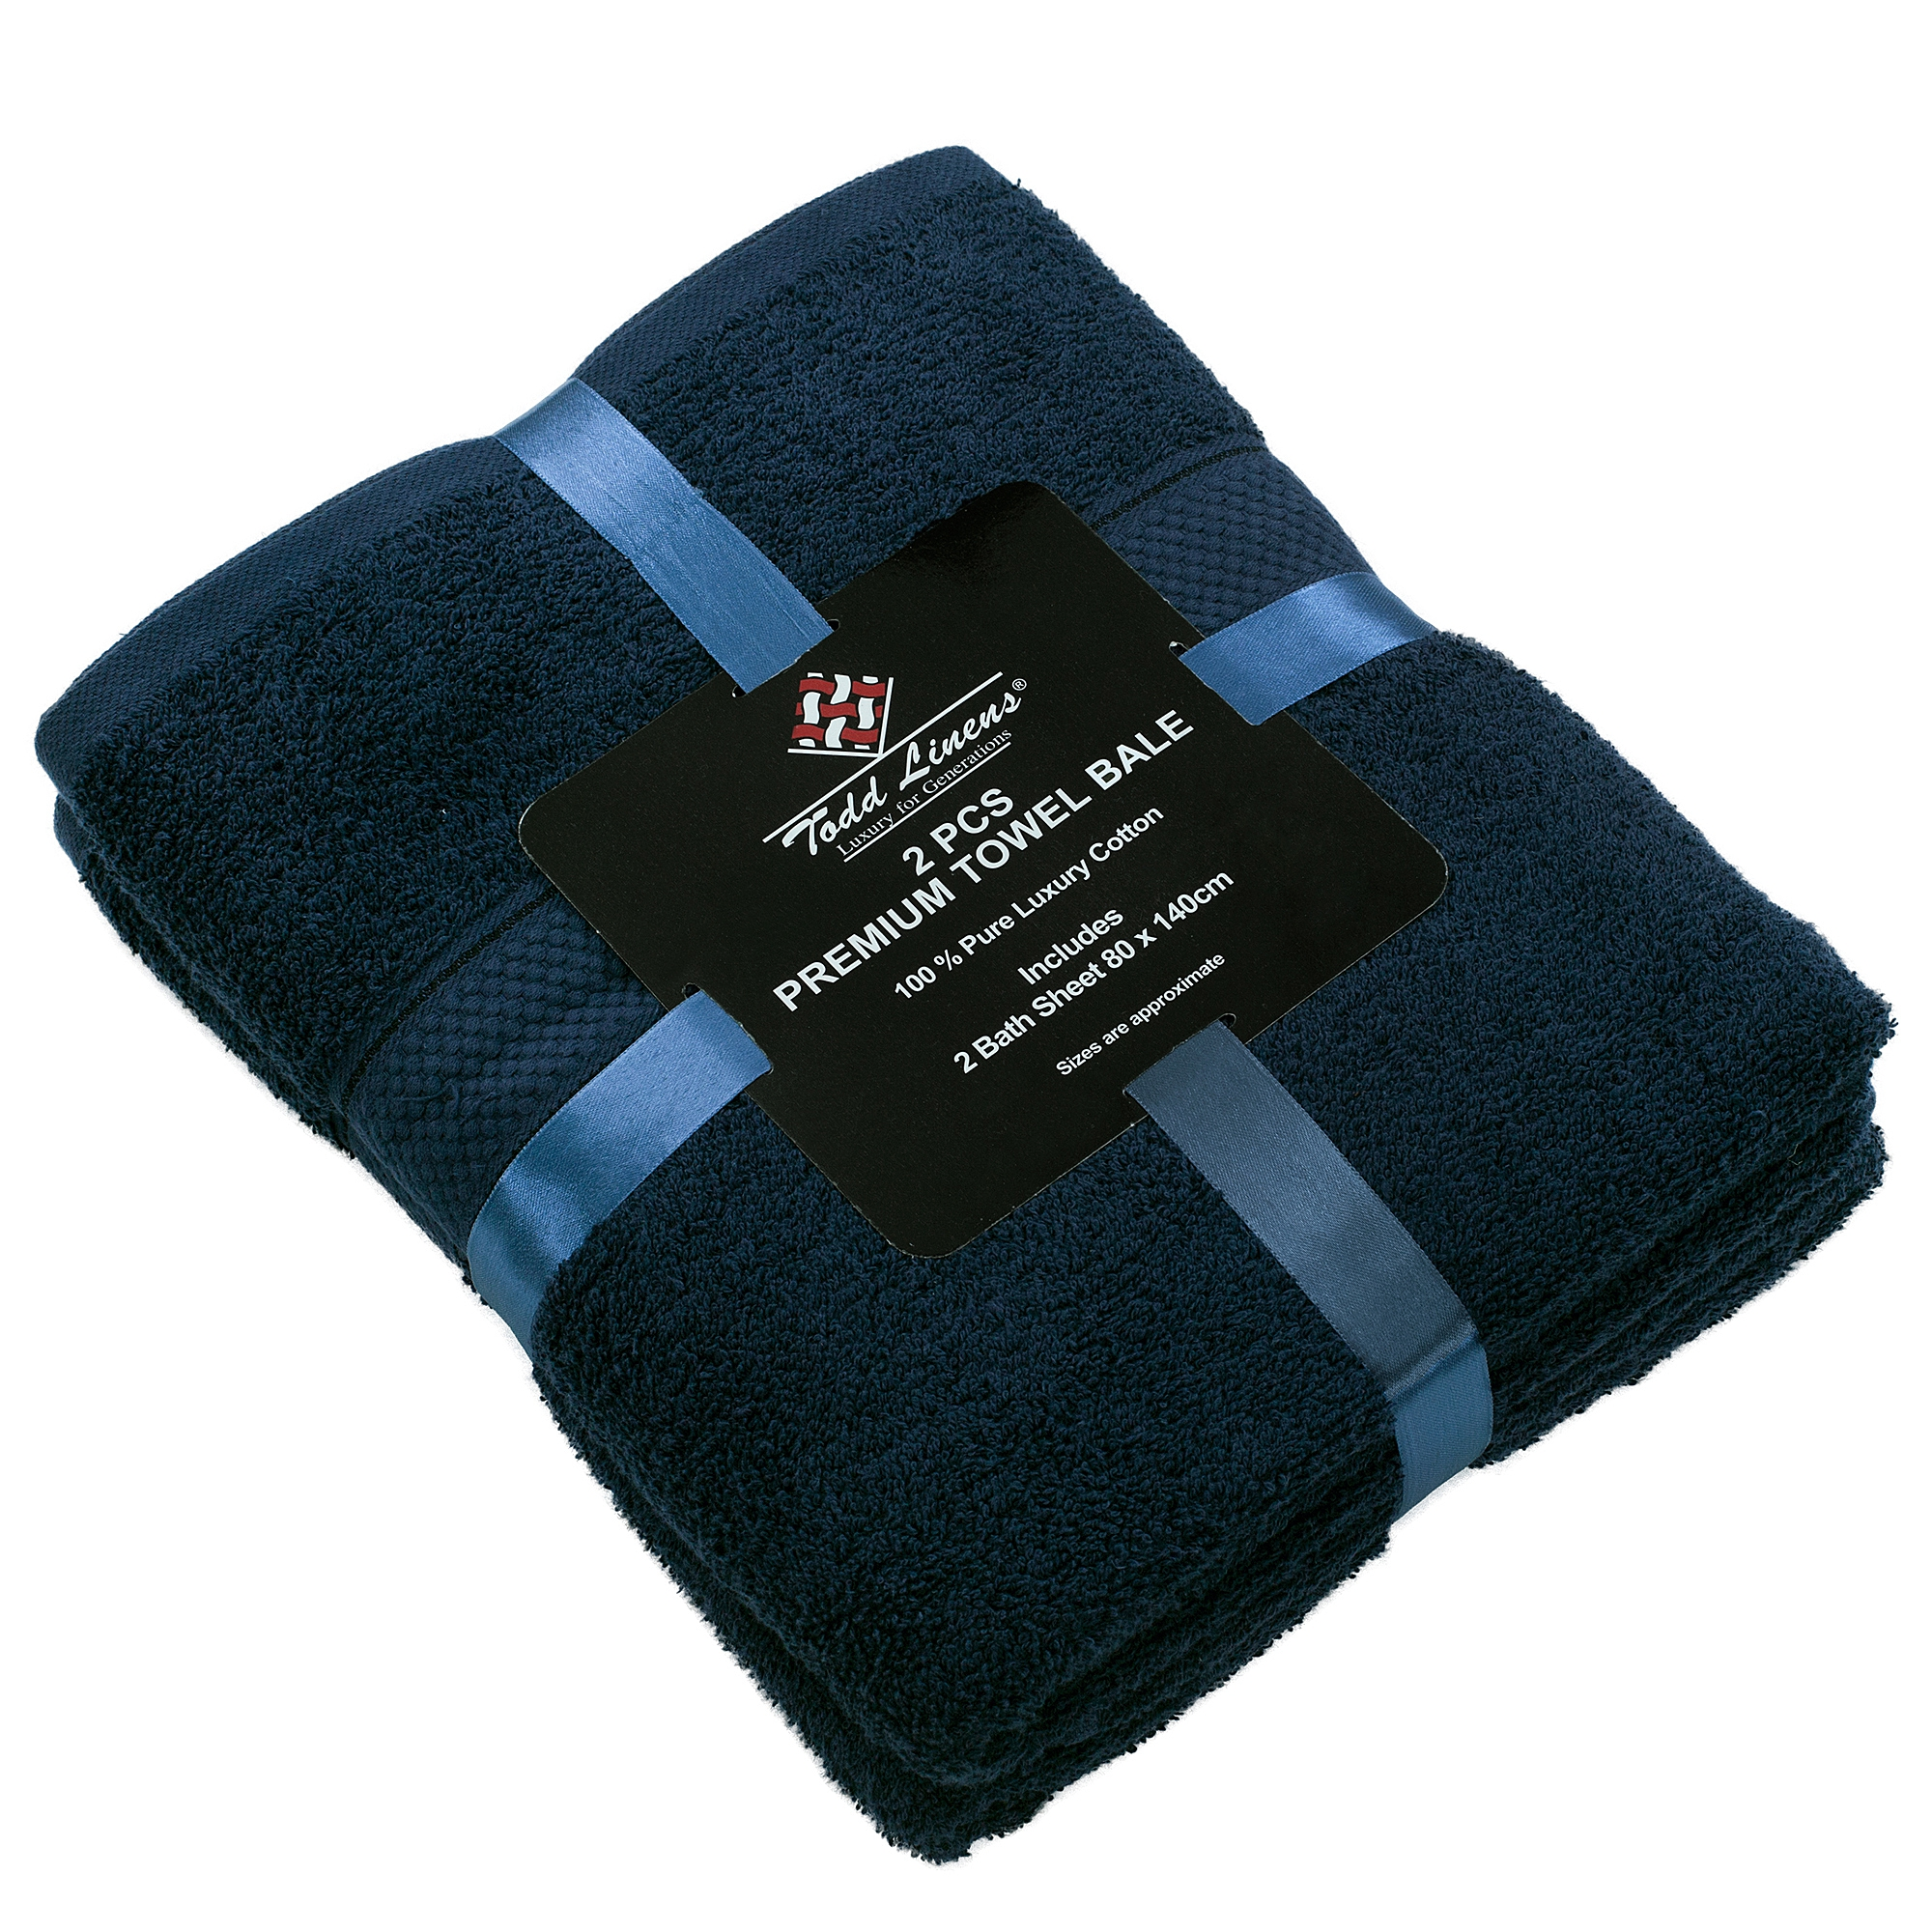 2 Pcs 100 % Cotton Premium Bath Sheet Towel Bale Set Navy Dark Plain